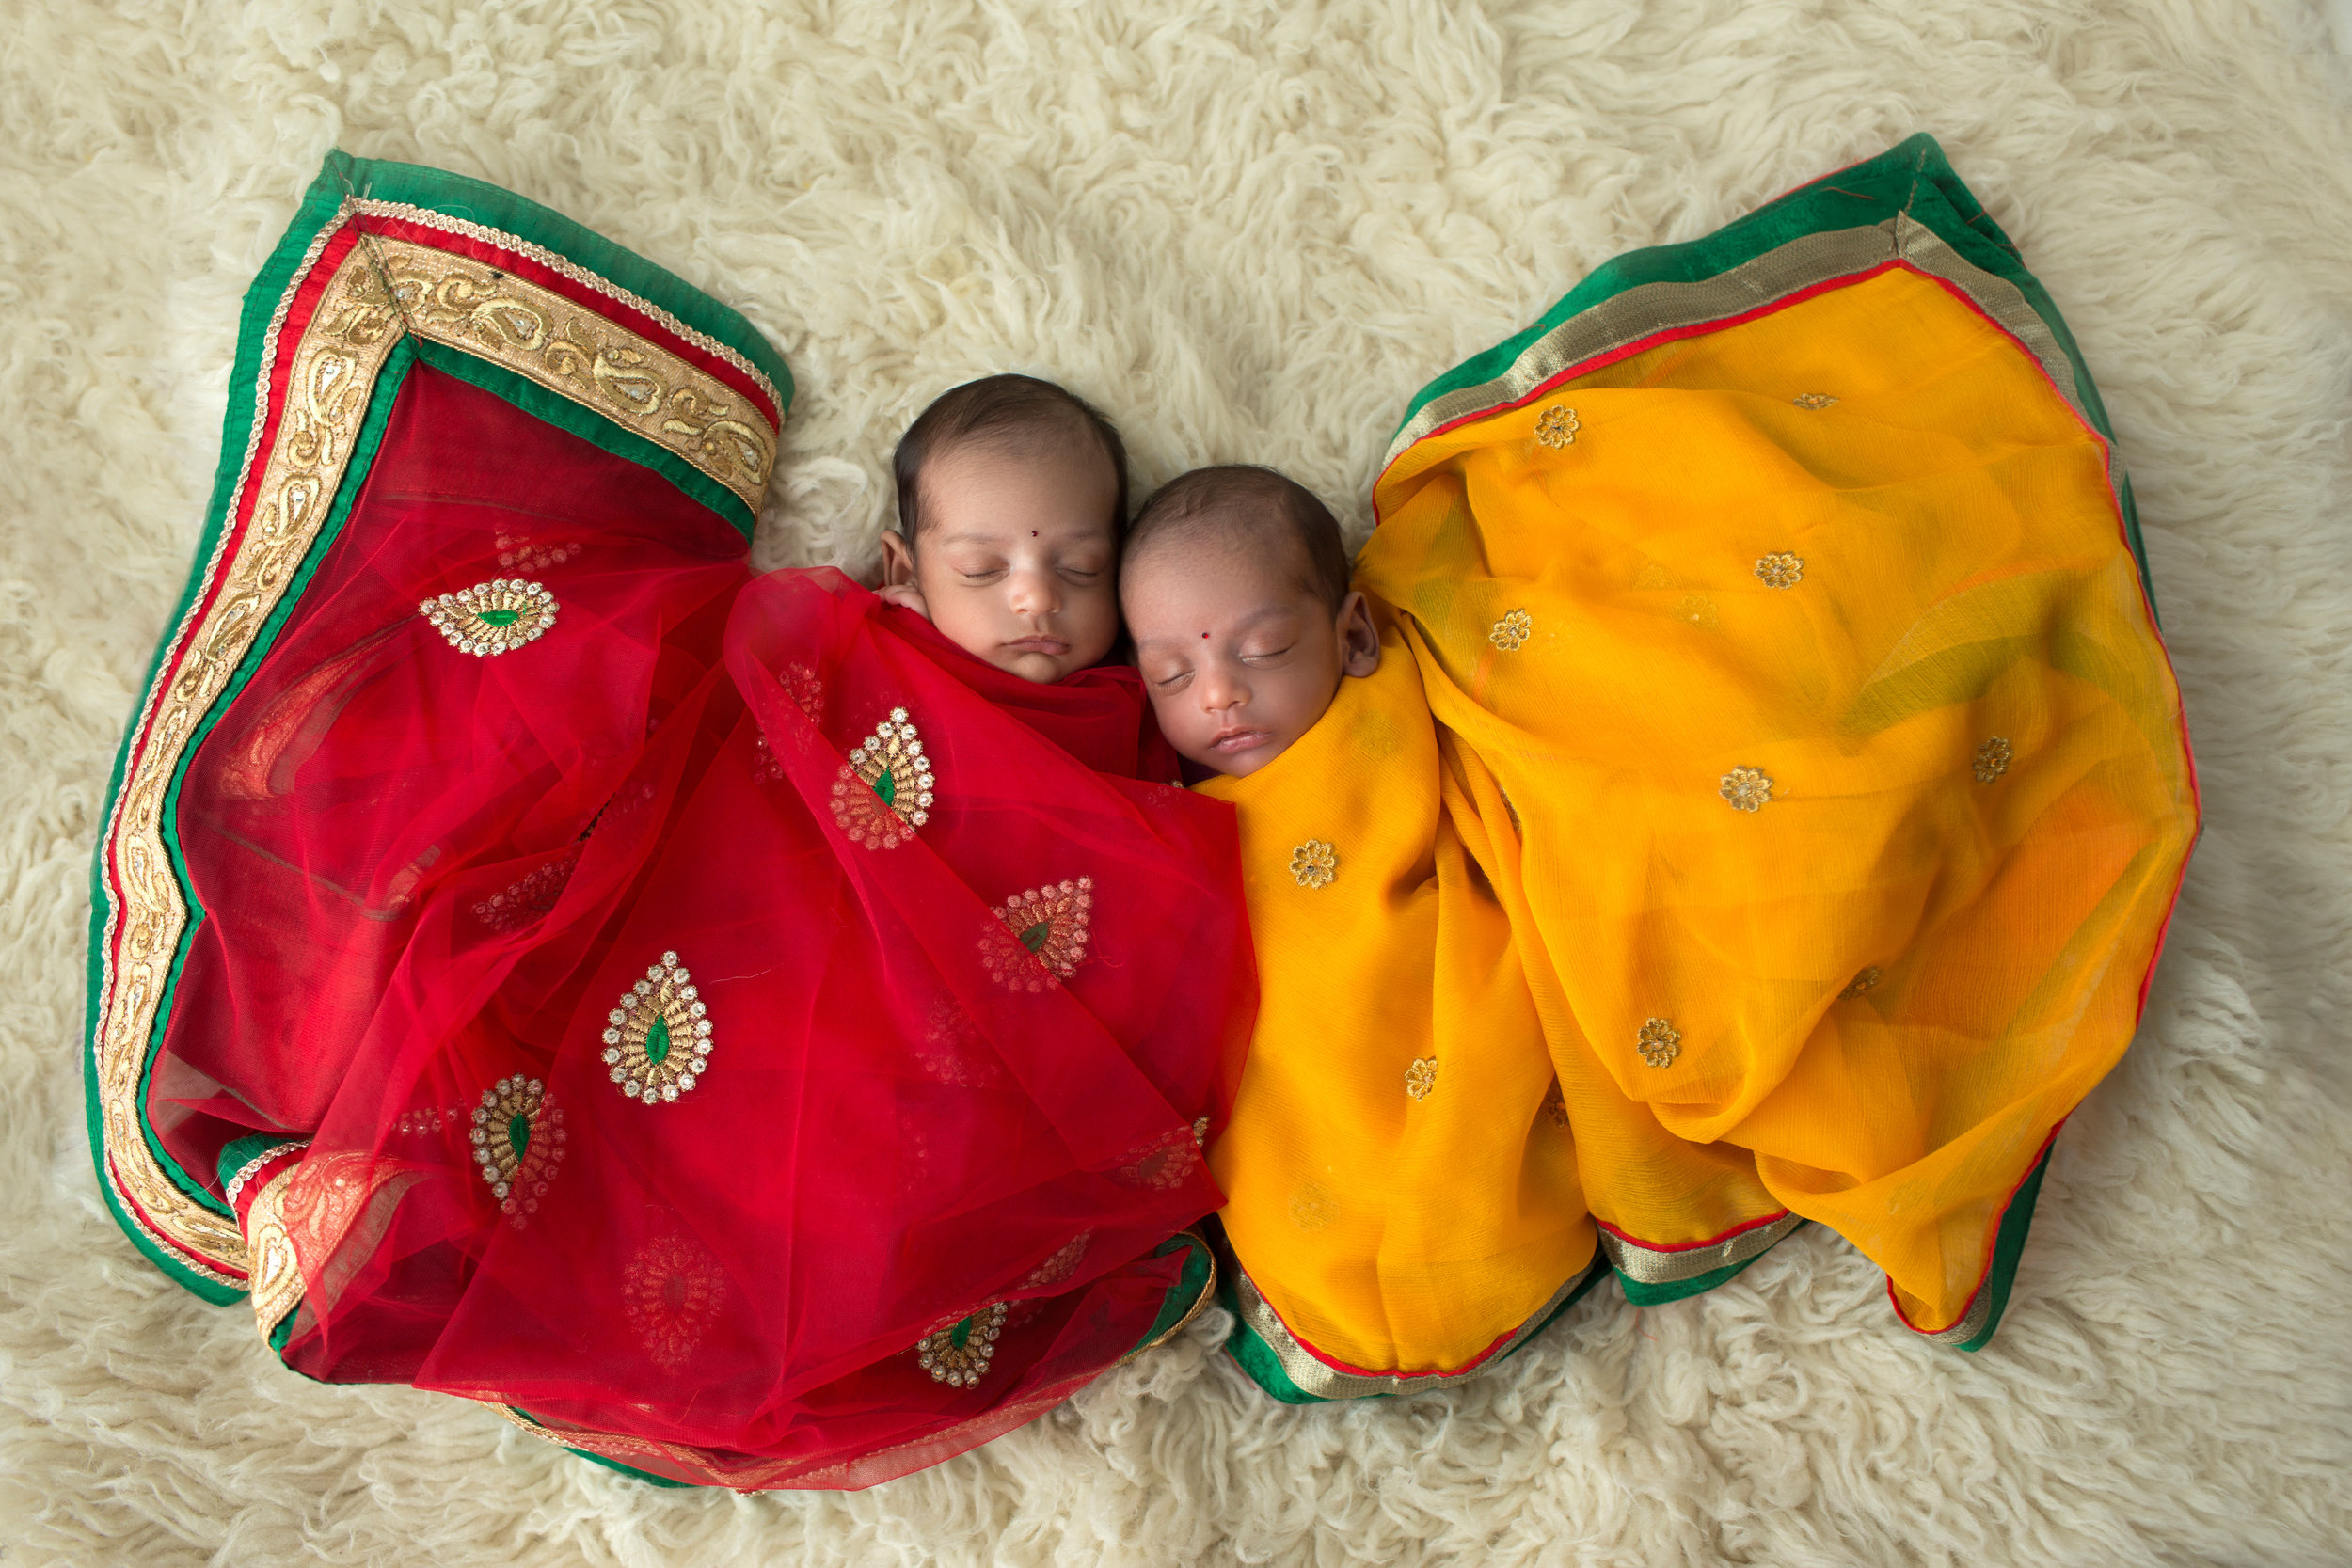 newborn twins dressed in traditional Indian wedding garb